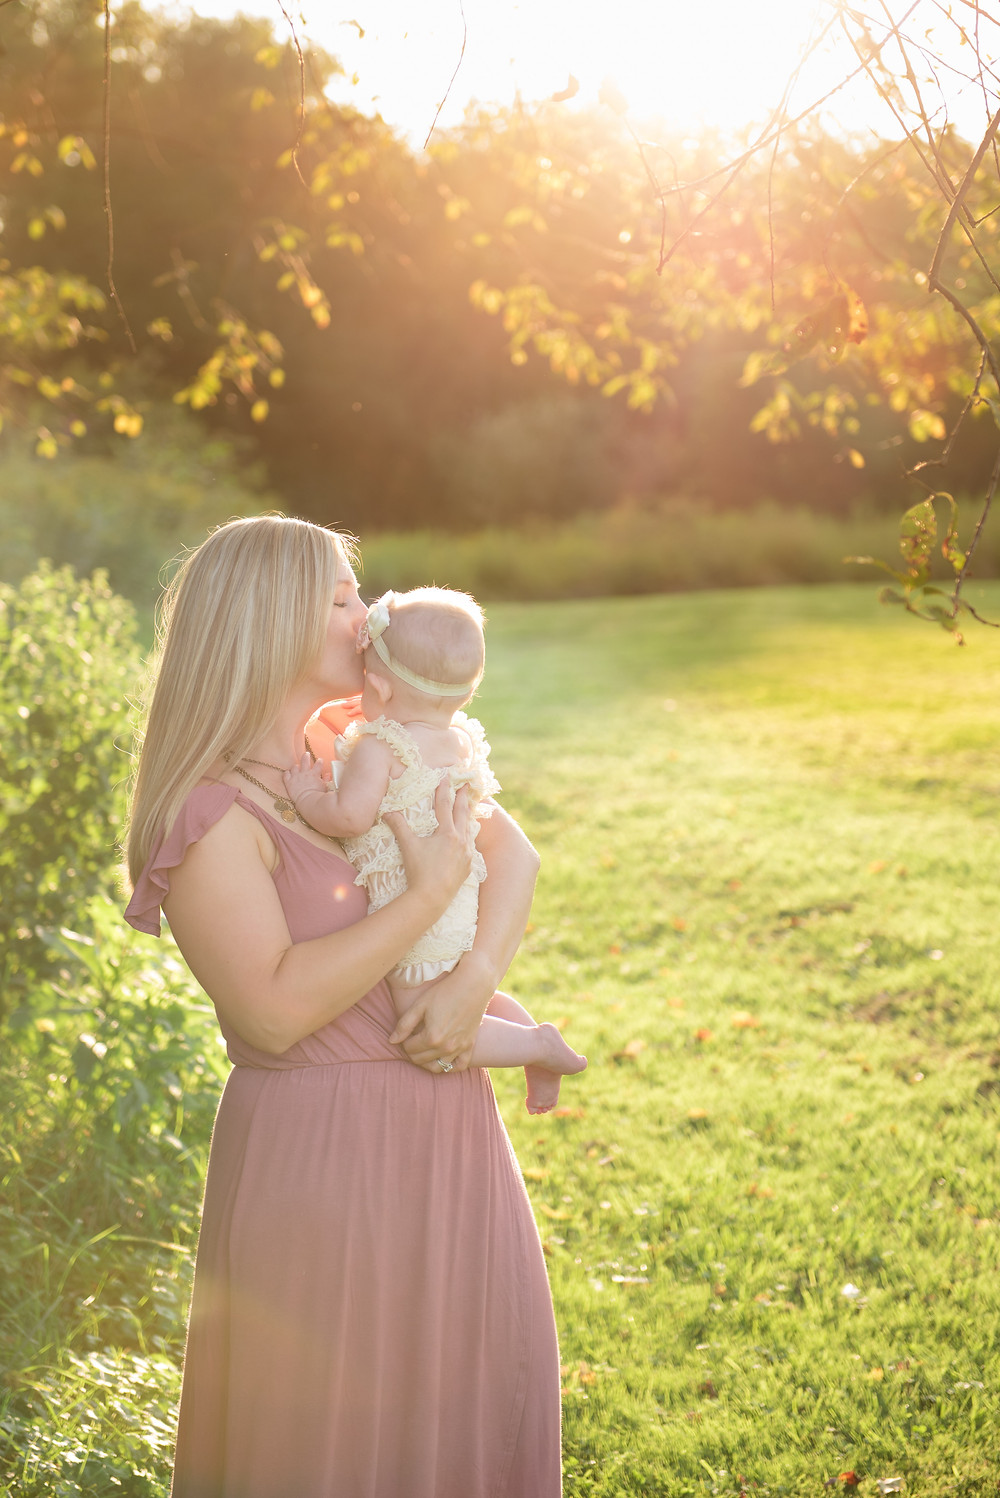 Mom kissing her baby girl in a field with brilliant sunlight behind her